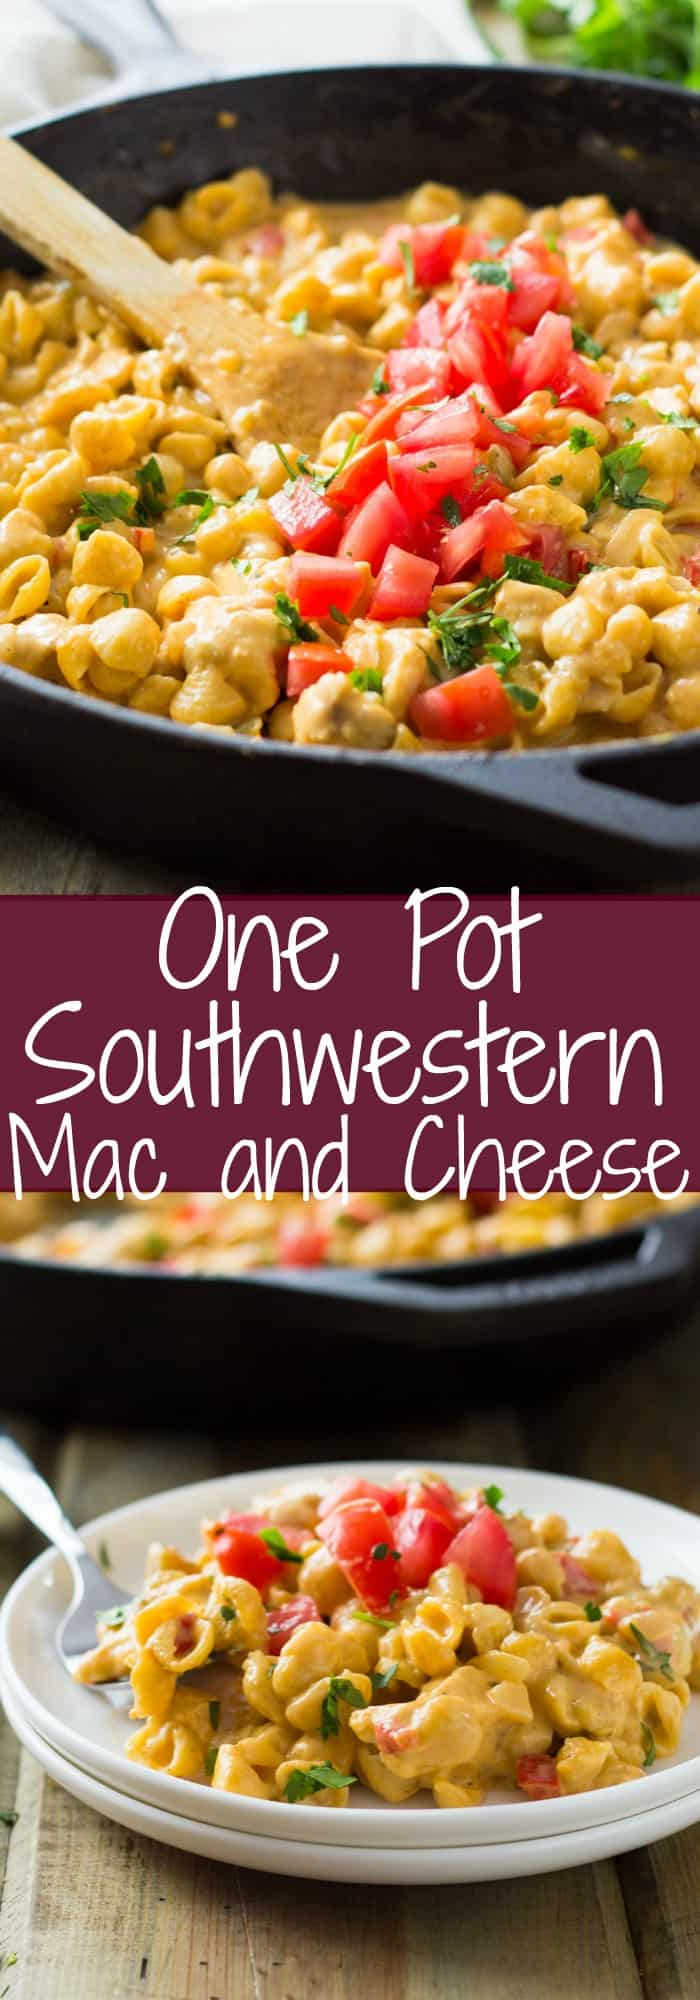 One Pot Southwestern Chicken Macaroni and Cheese is a quick, easy and super delicious meal! It's macaroni and cheese kicked up a notch.